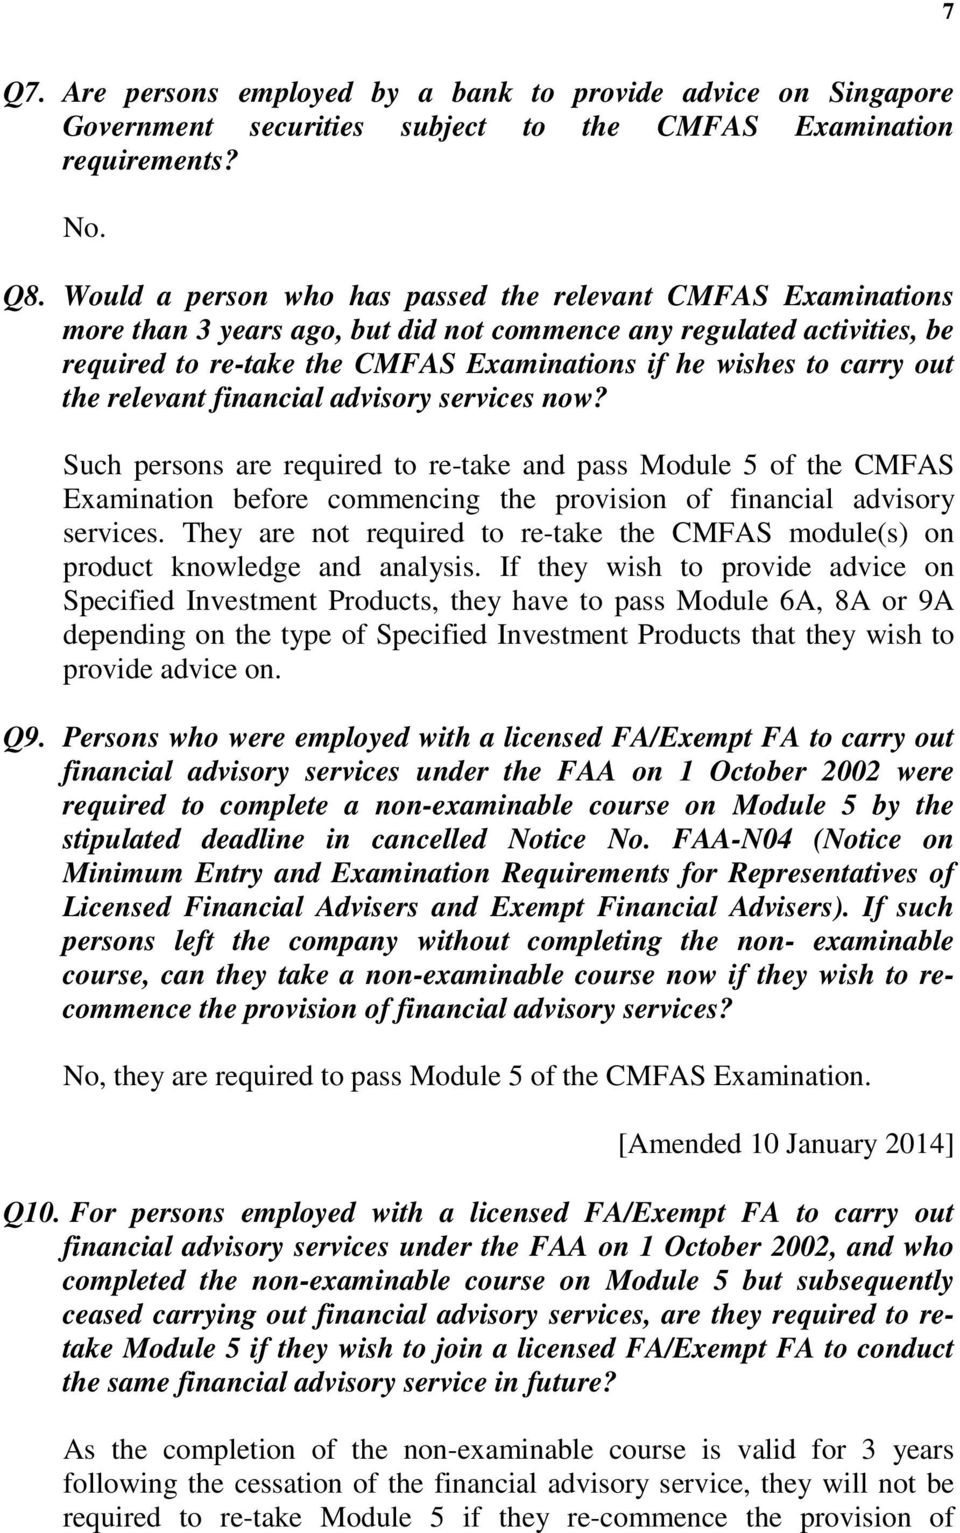 out the relevant financial advisory services now? Such persons are required to re-take and pass Module 5 of the CMFAS Examination before commencing the provision of financial advisory services.